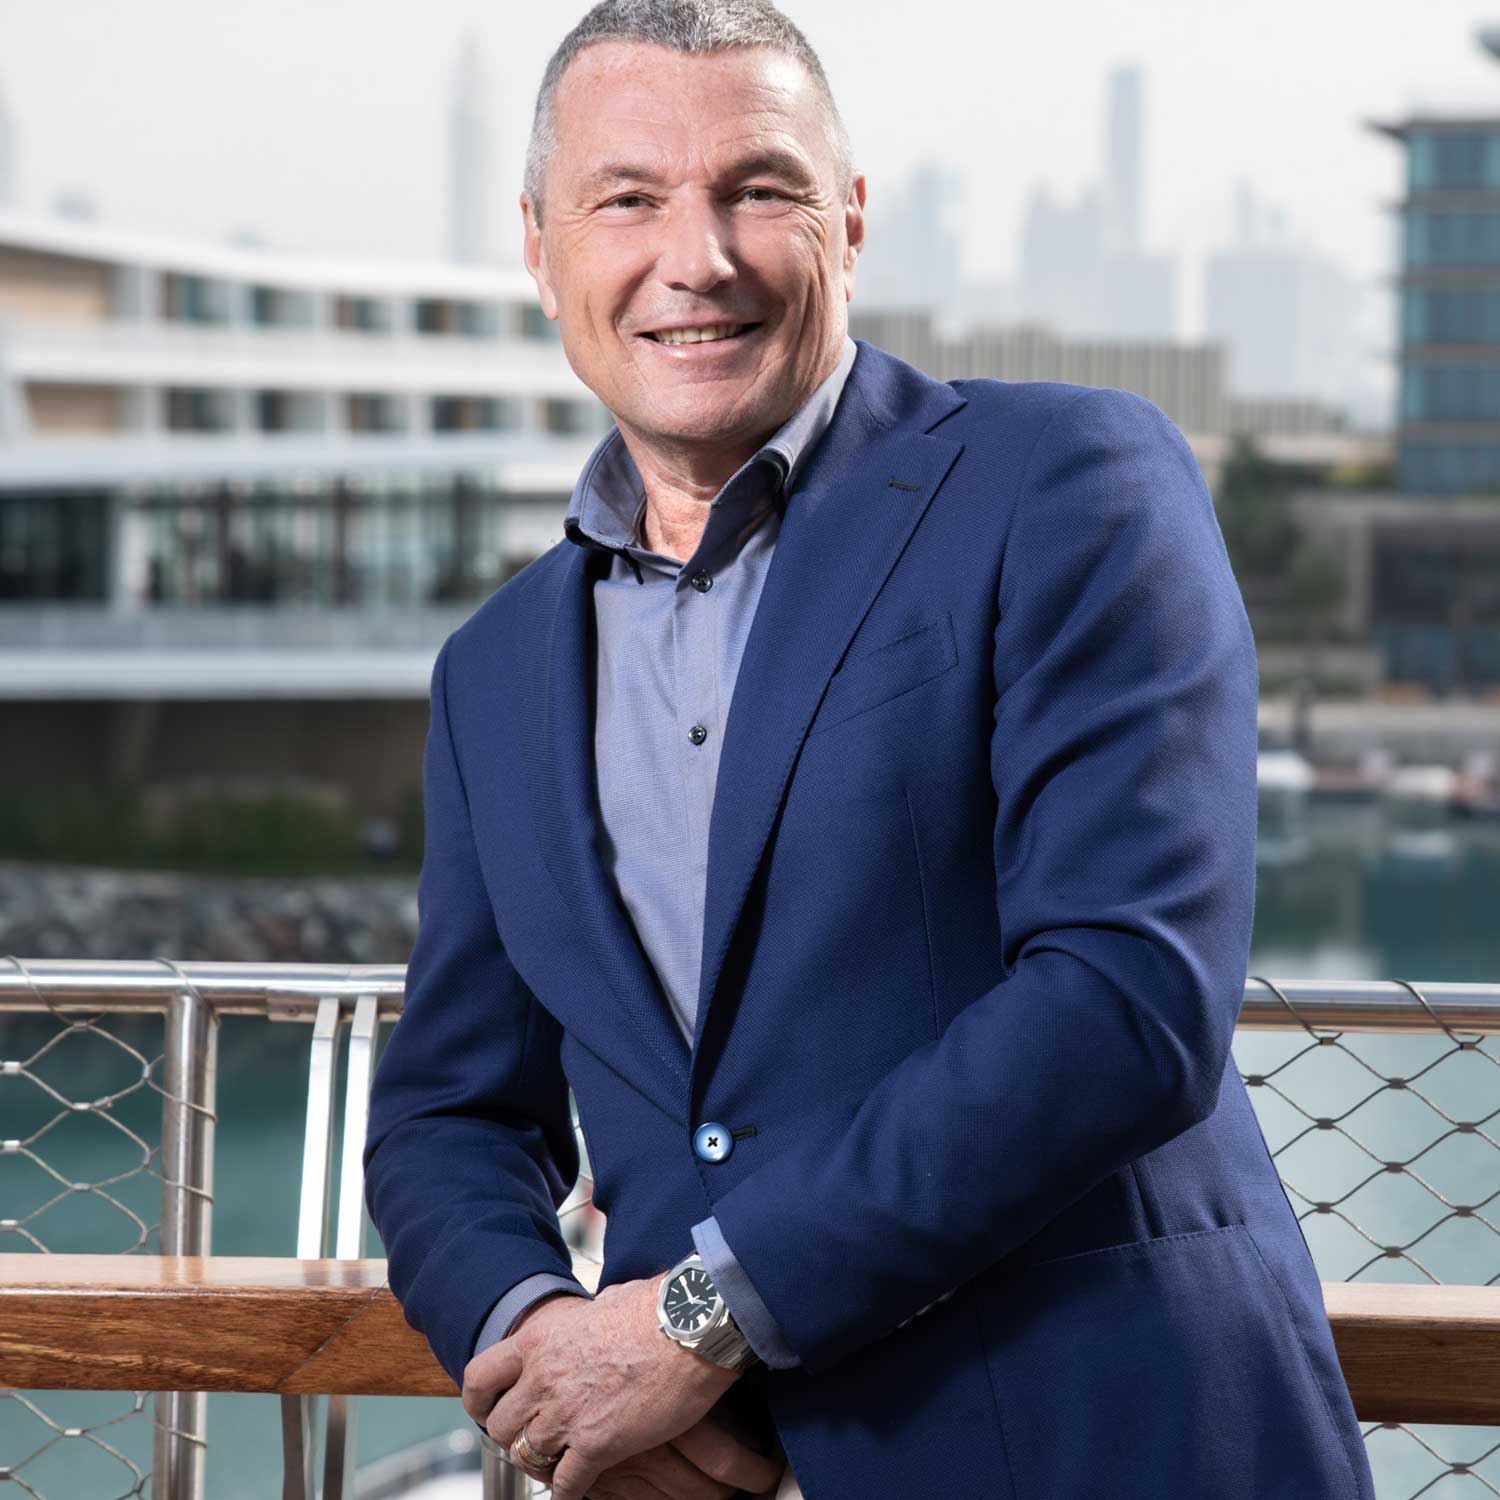 Bulgari CEO, Jean-Christophe Babin earlier in 2020 at the LVMH Watch Week in Dubai, January 13-15